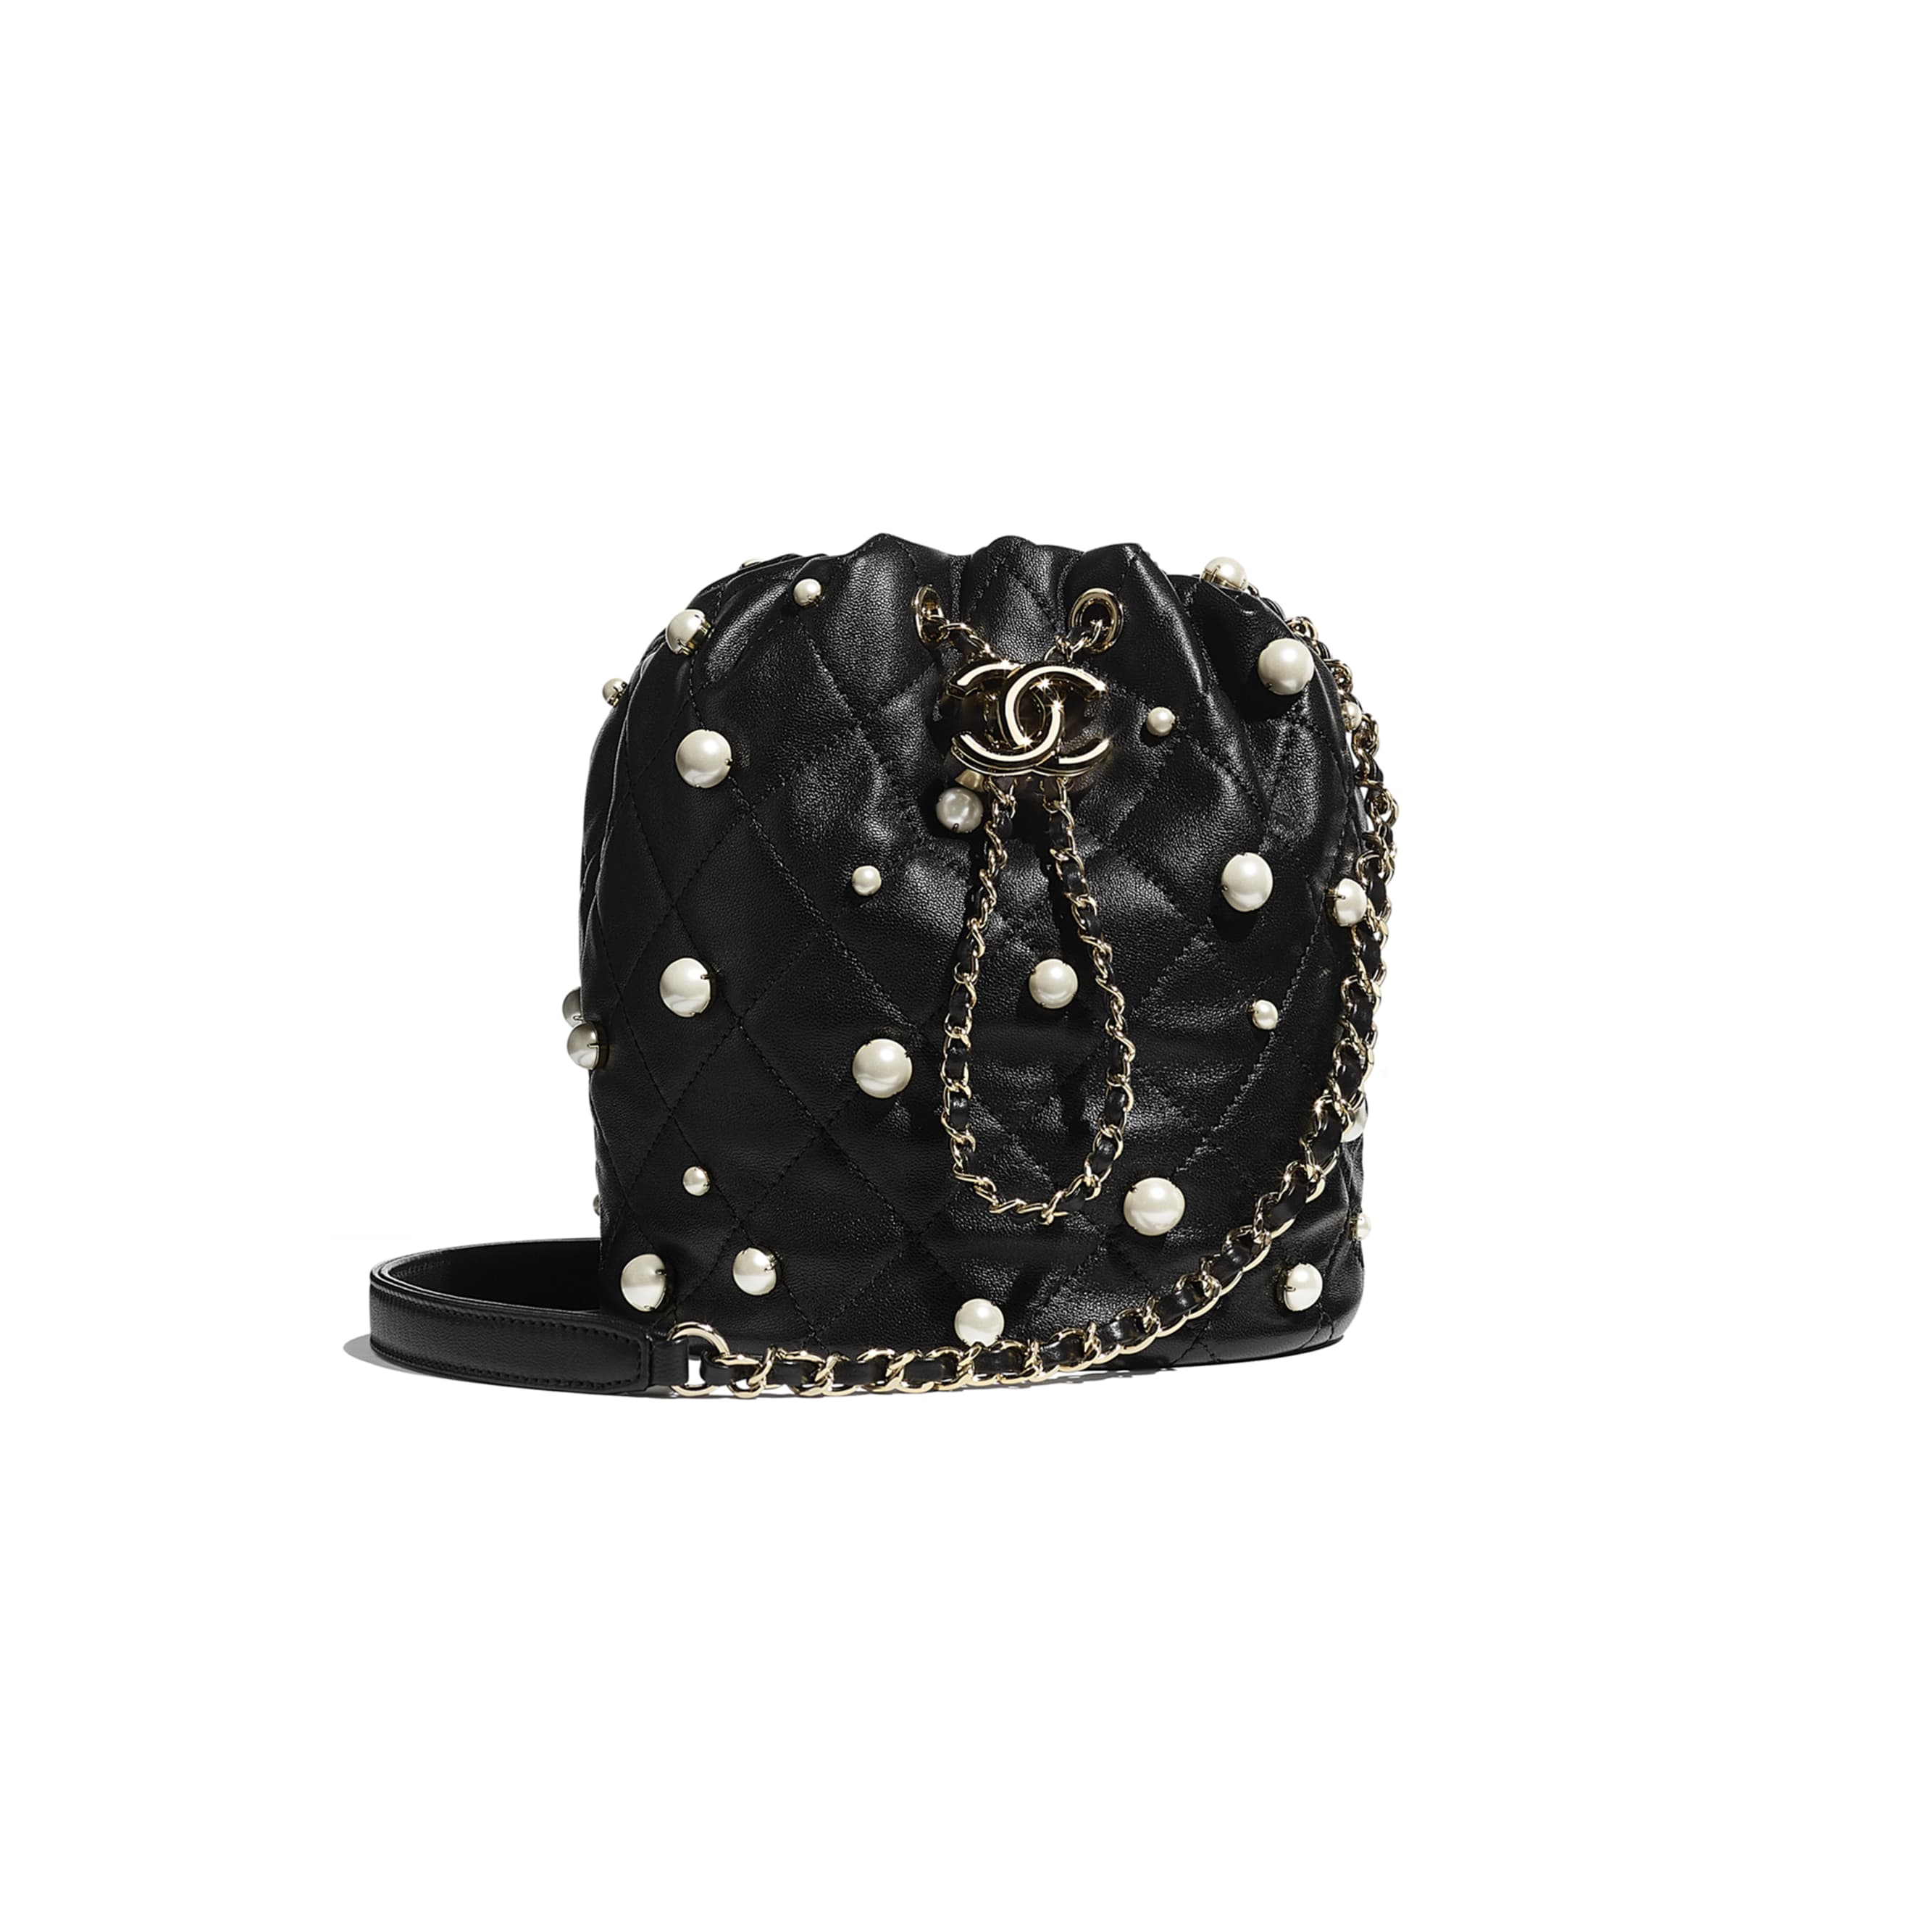 Small Drawstring Bag - Black - Lambskin, Imitation Pearls & Gold Metal - CHANEL - Default view - see standard sized version